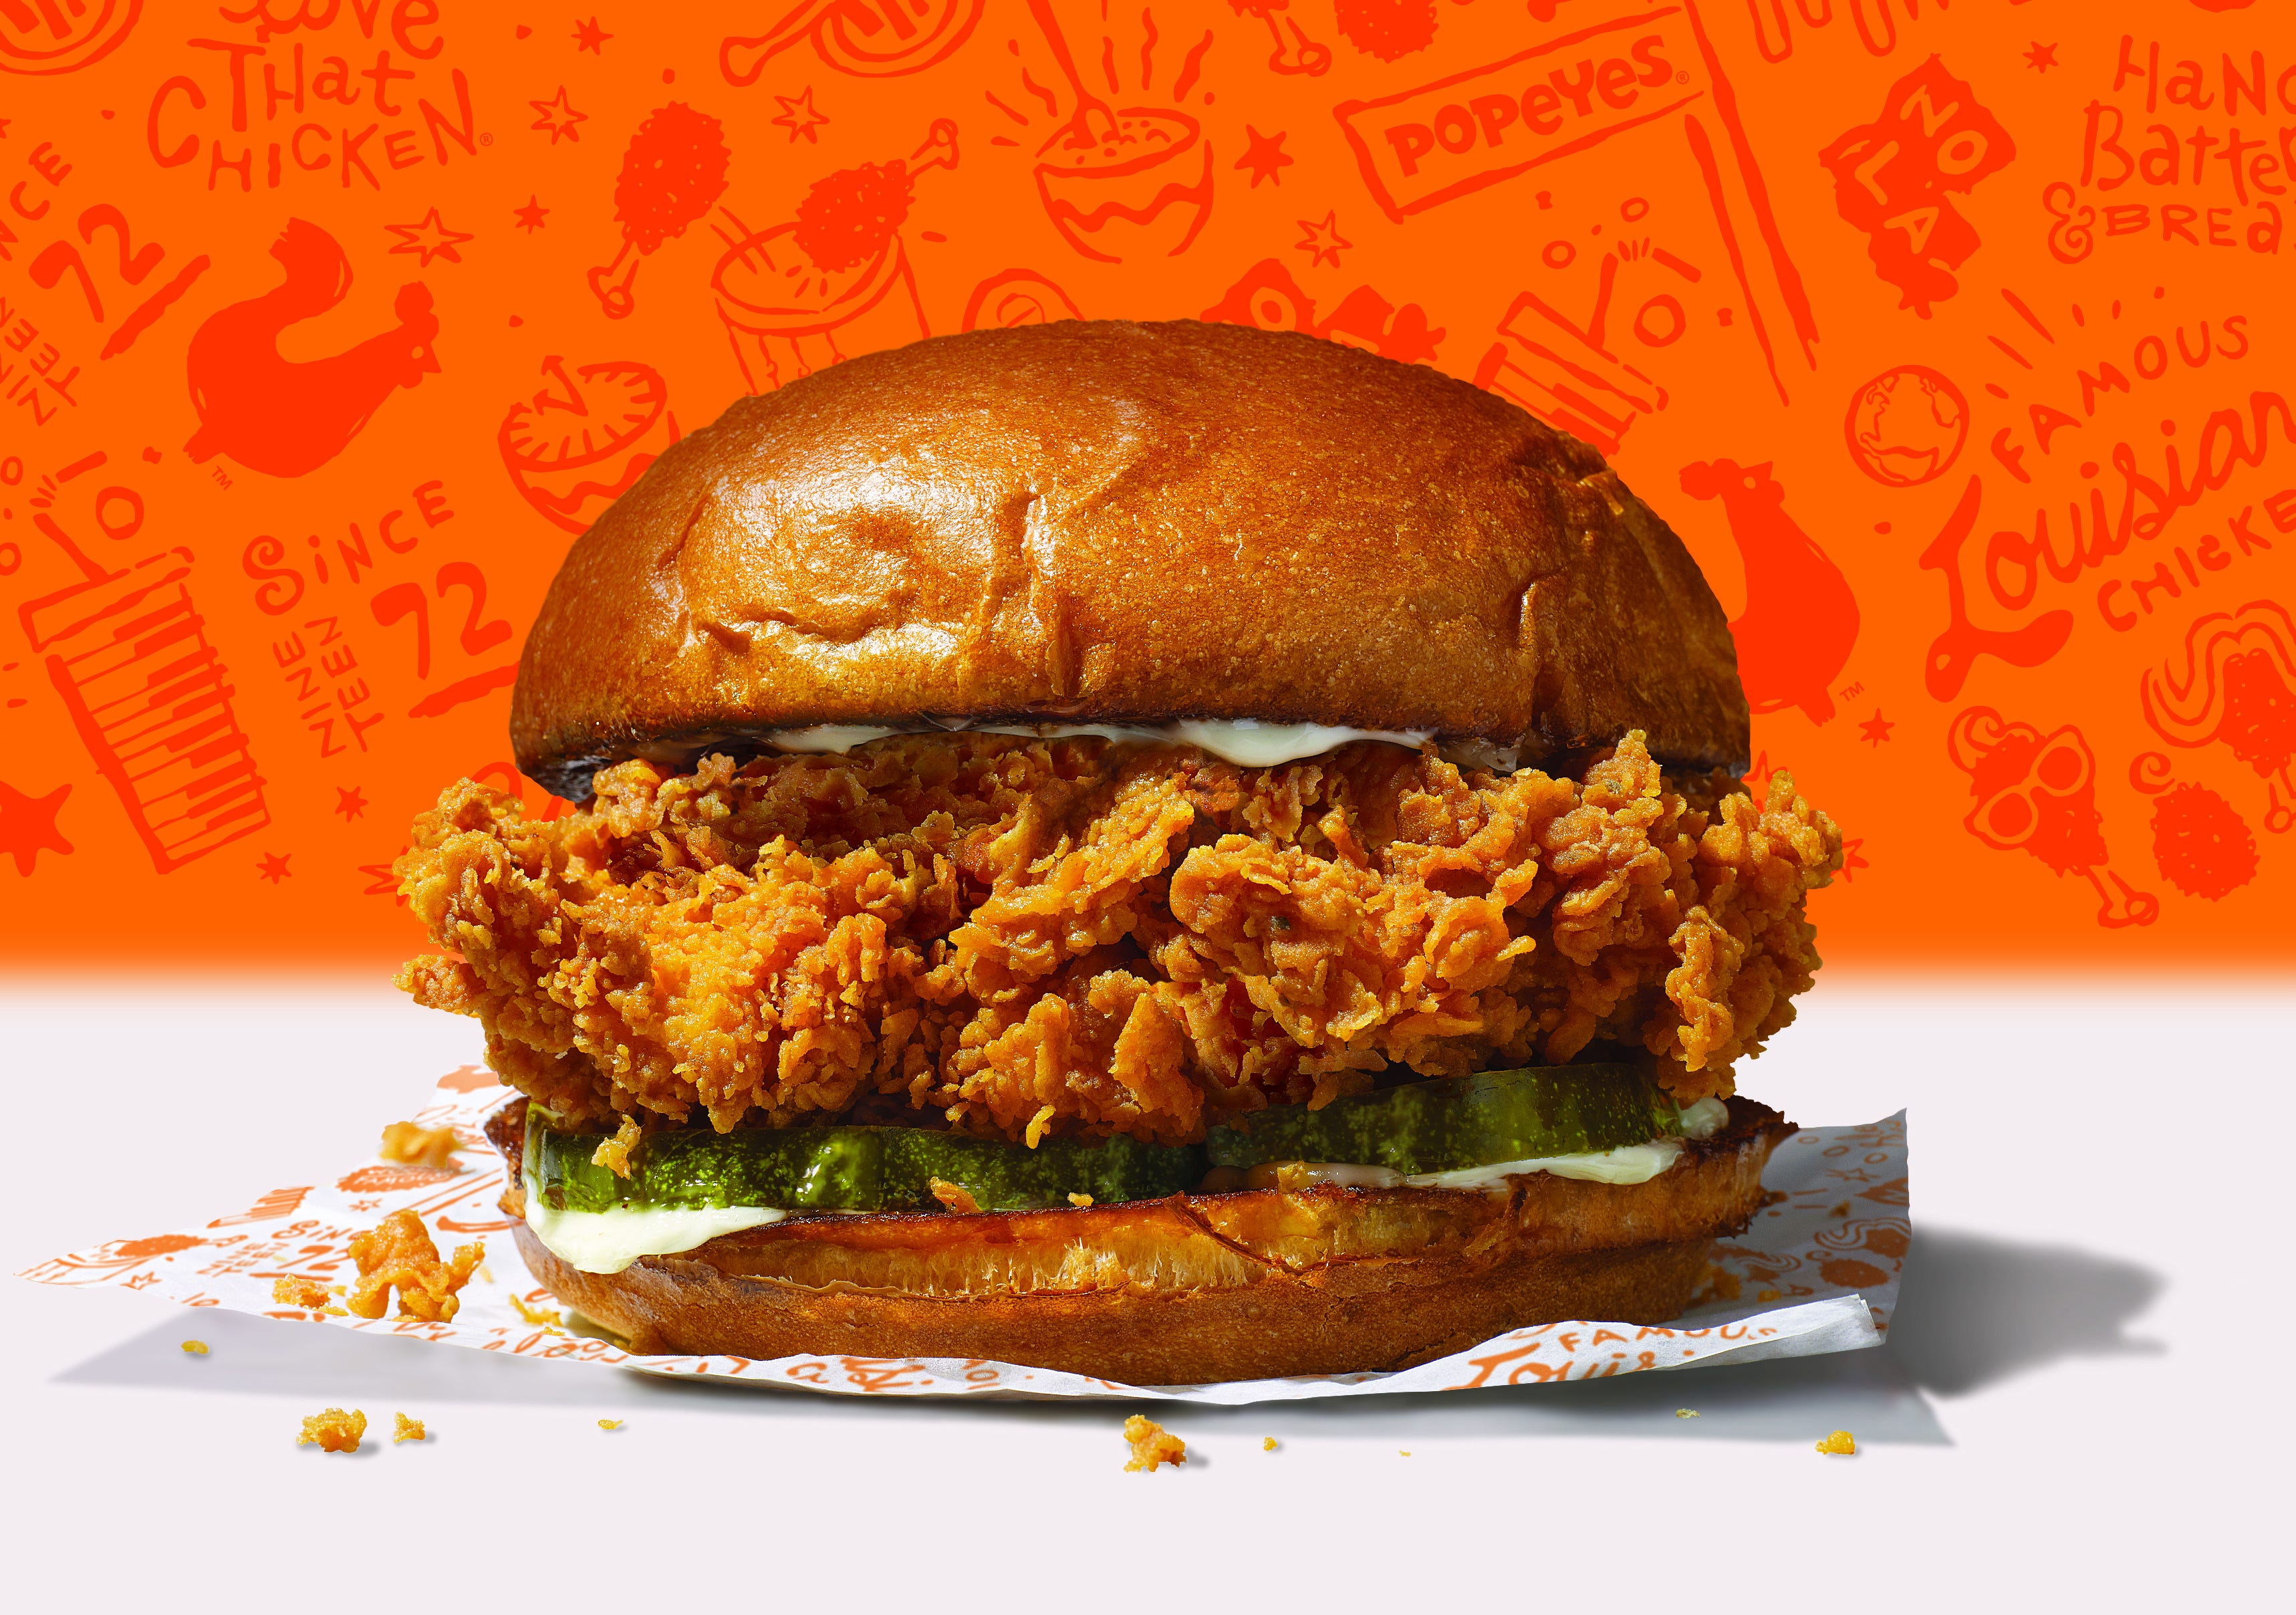 Popeye's, Chick-fil-A, Wendy's? Vote for the best chicken sandwich